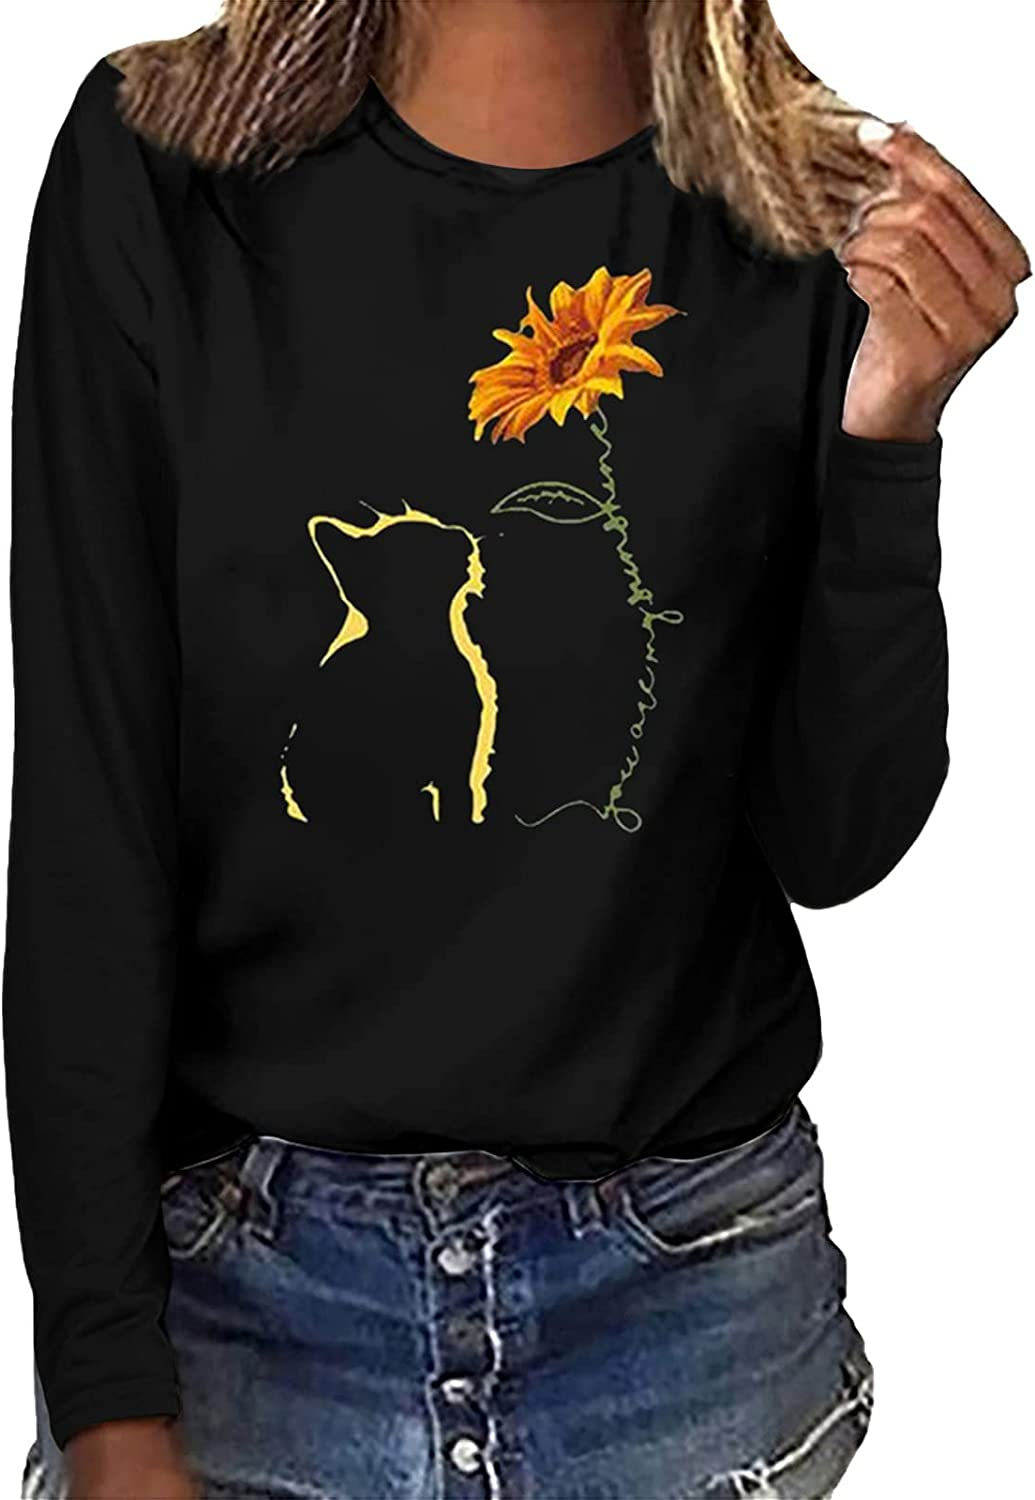 Womens Tops Popular shop is the Online limited product lowest price challenge Women Print Casual Sweatshirt Sleeve Long P Printing